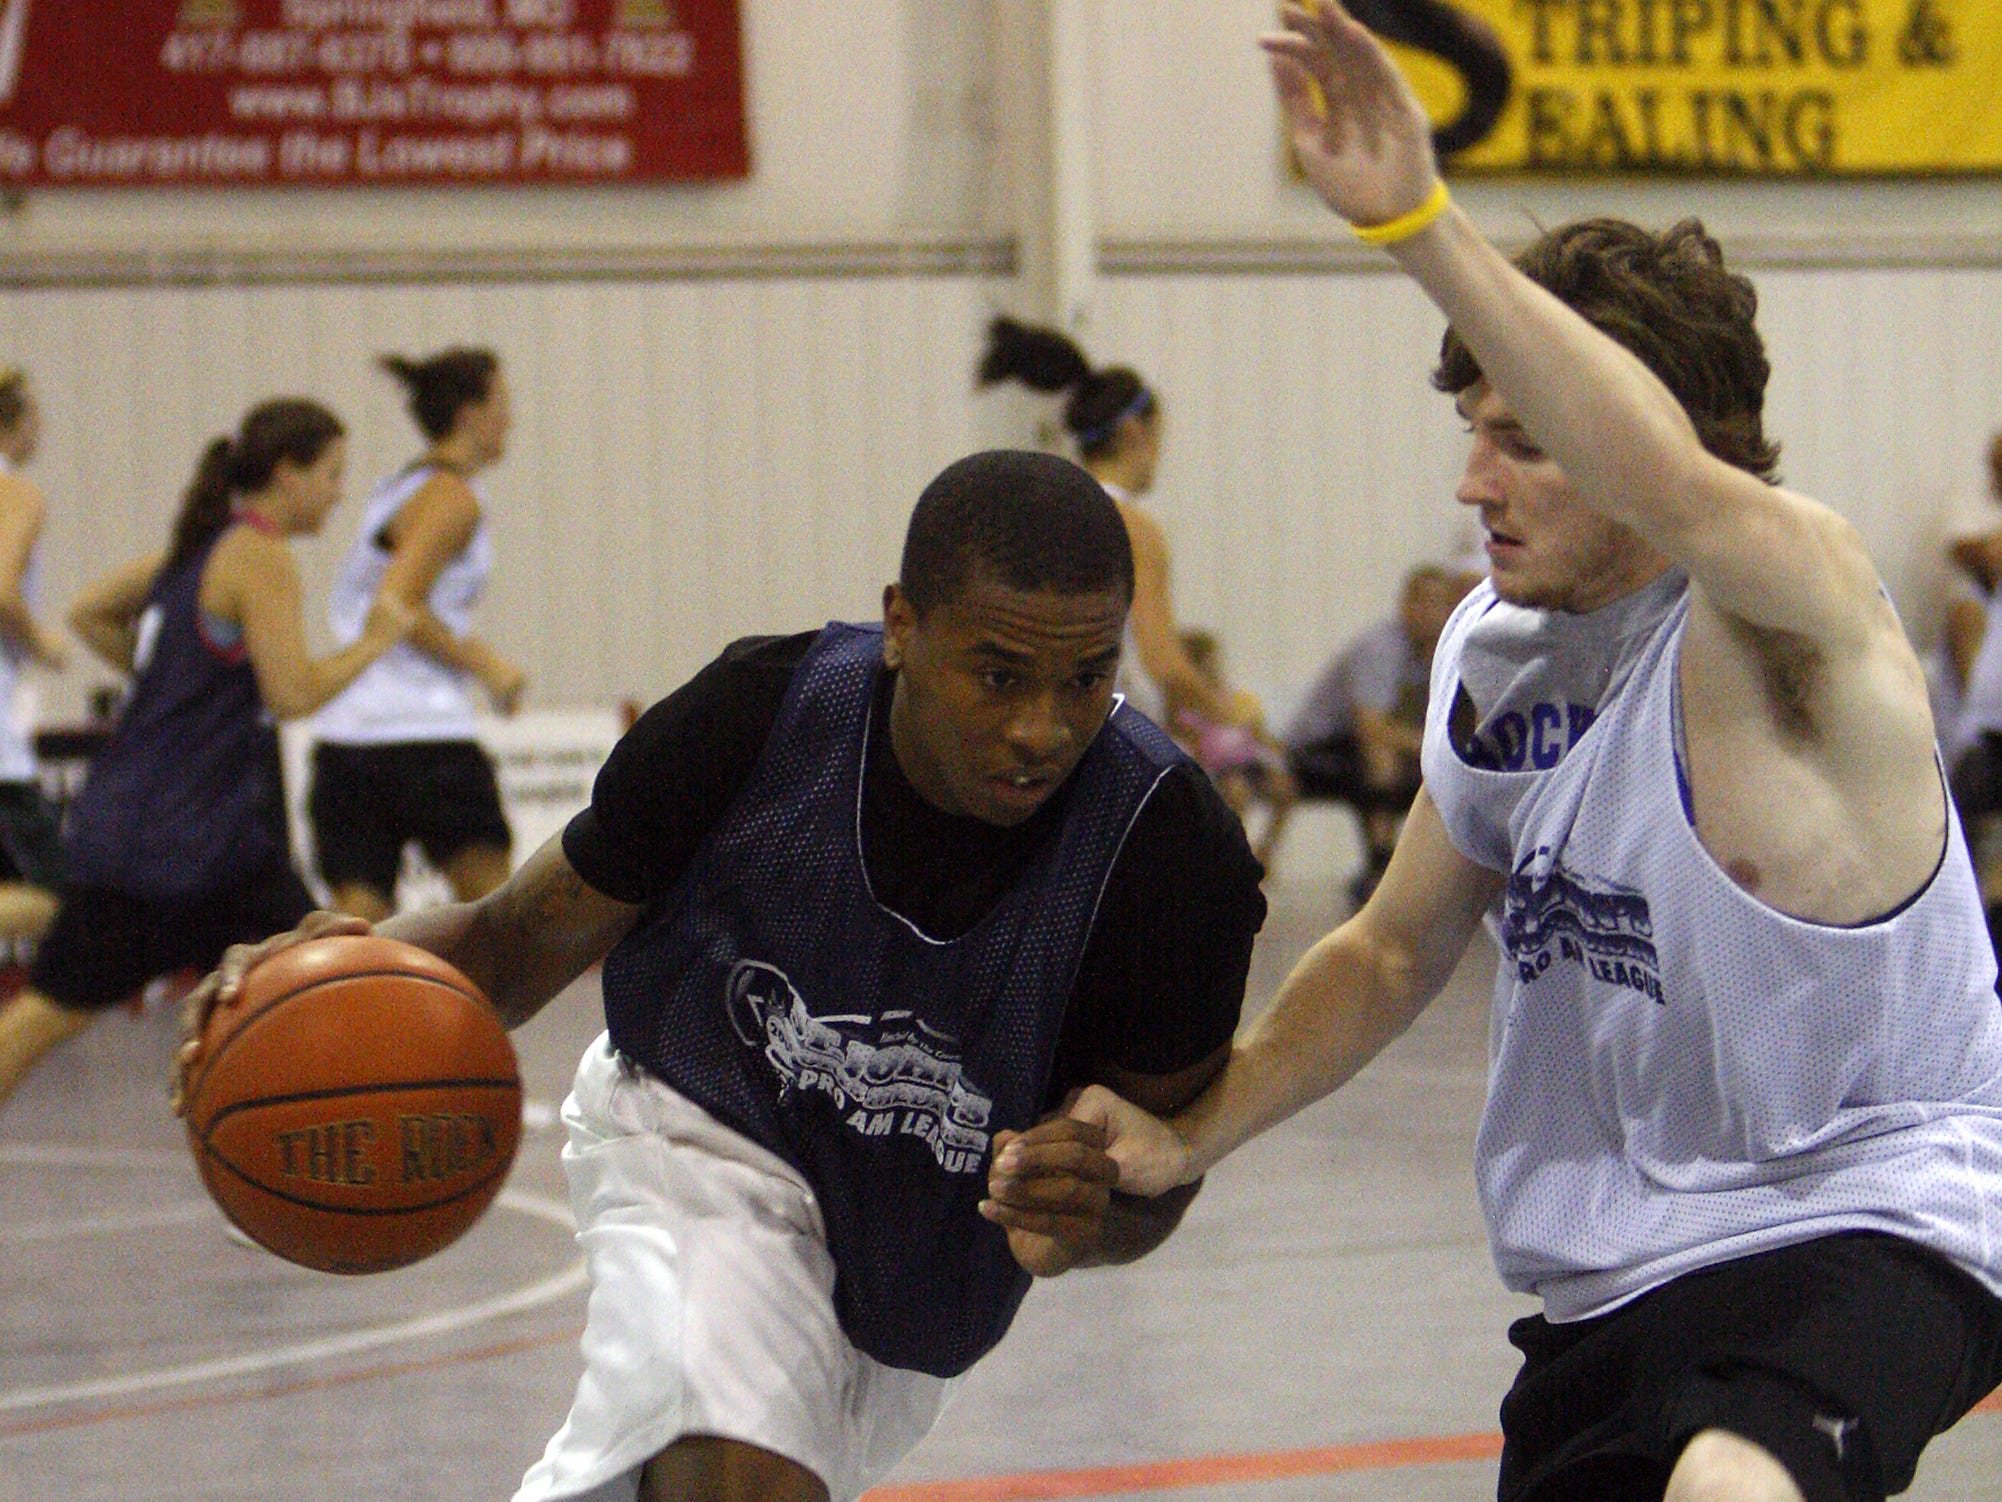 Team Osos forward Keith Pickens, left, drives along the baseline with the basketball while defended by Team Crusaders guard Jayme Donnelly, right, during their basketball game at the St. John's Sports Medicine Pro Am League 2009 hosted by The Courts in Springfield, Missouri, Wednesday, July 1, 2009.